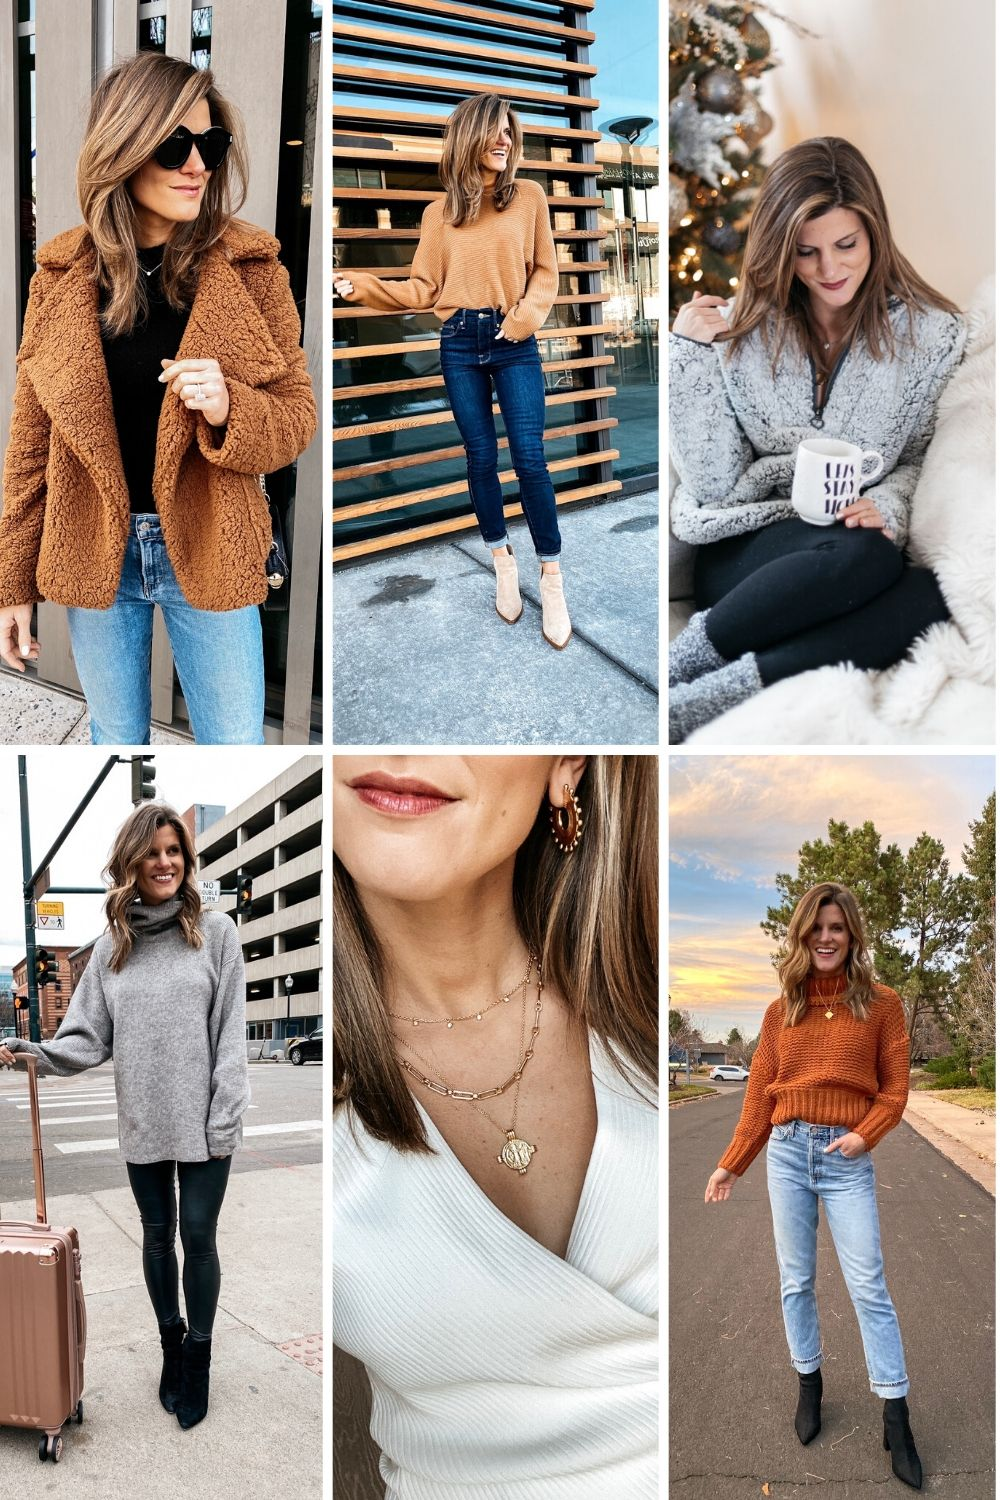 brighton keller instagram outfit fall 2019